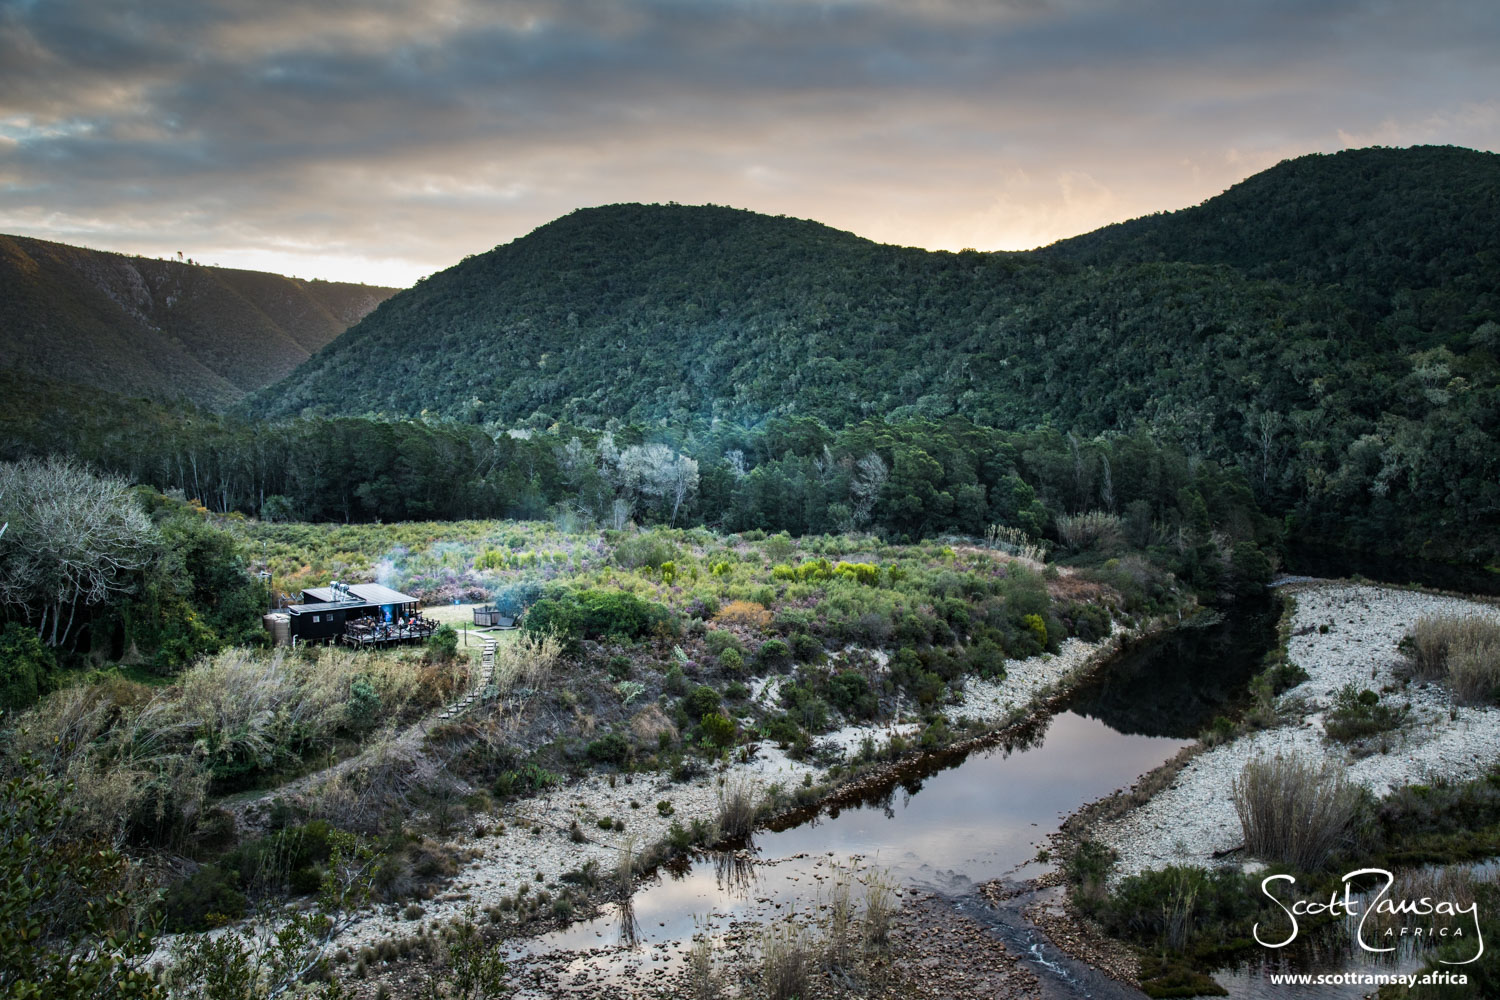 Whisky Creek Cabin, at the top of the Keurbooms River Gorge.